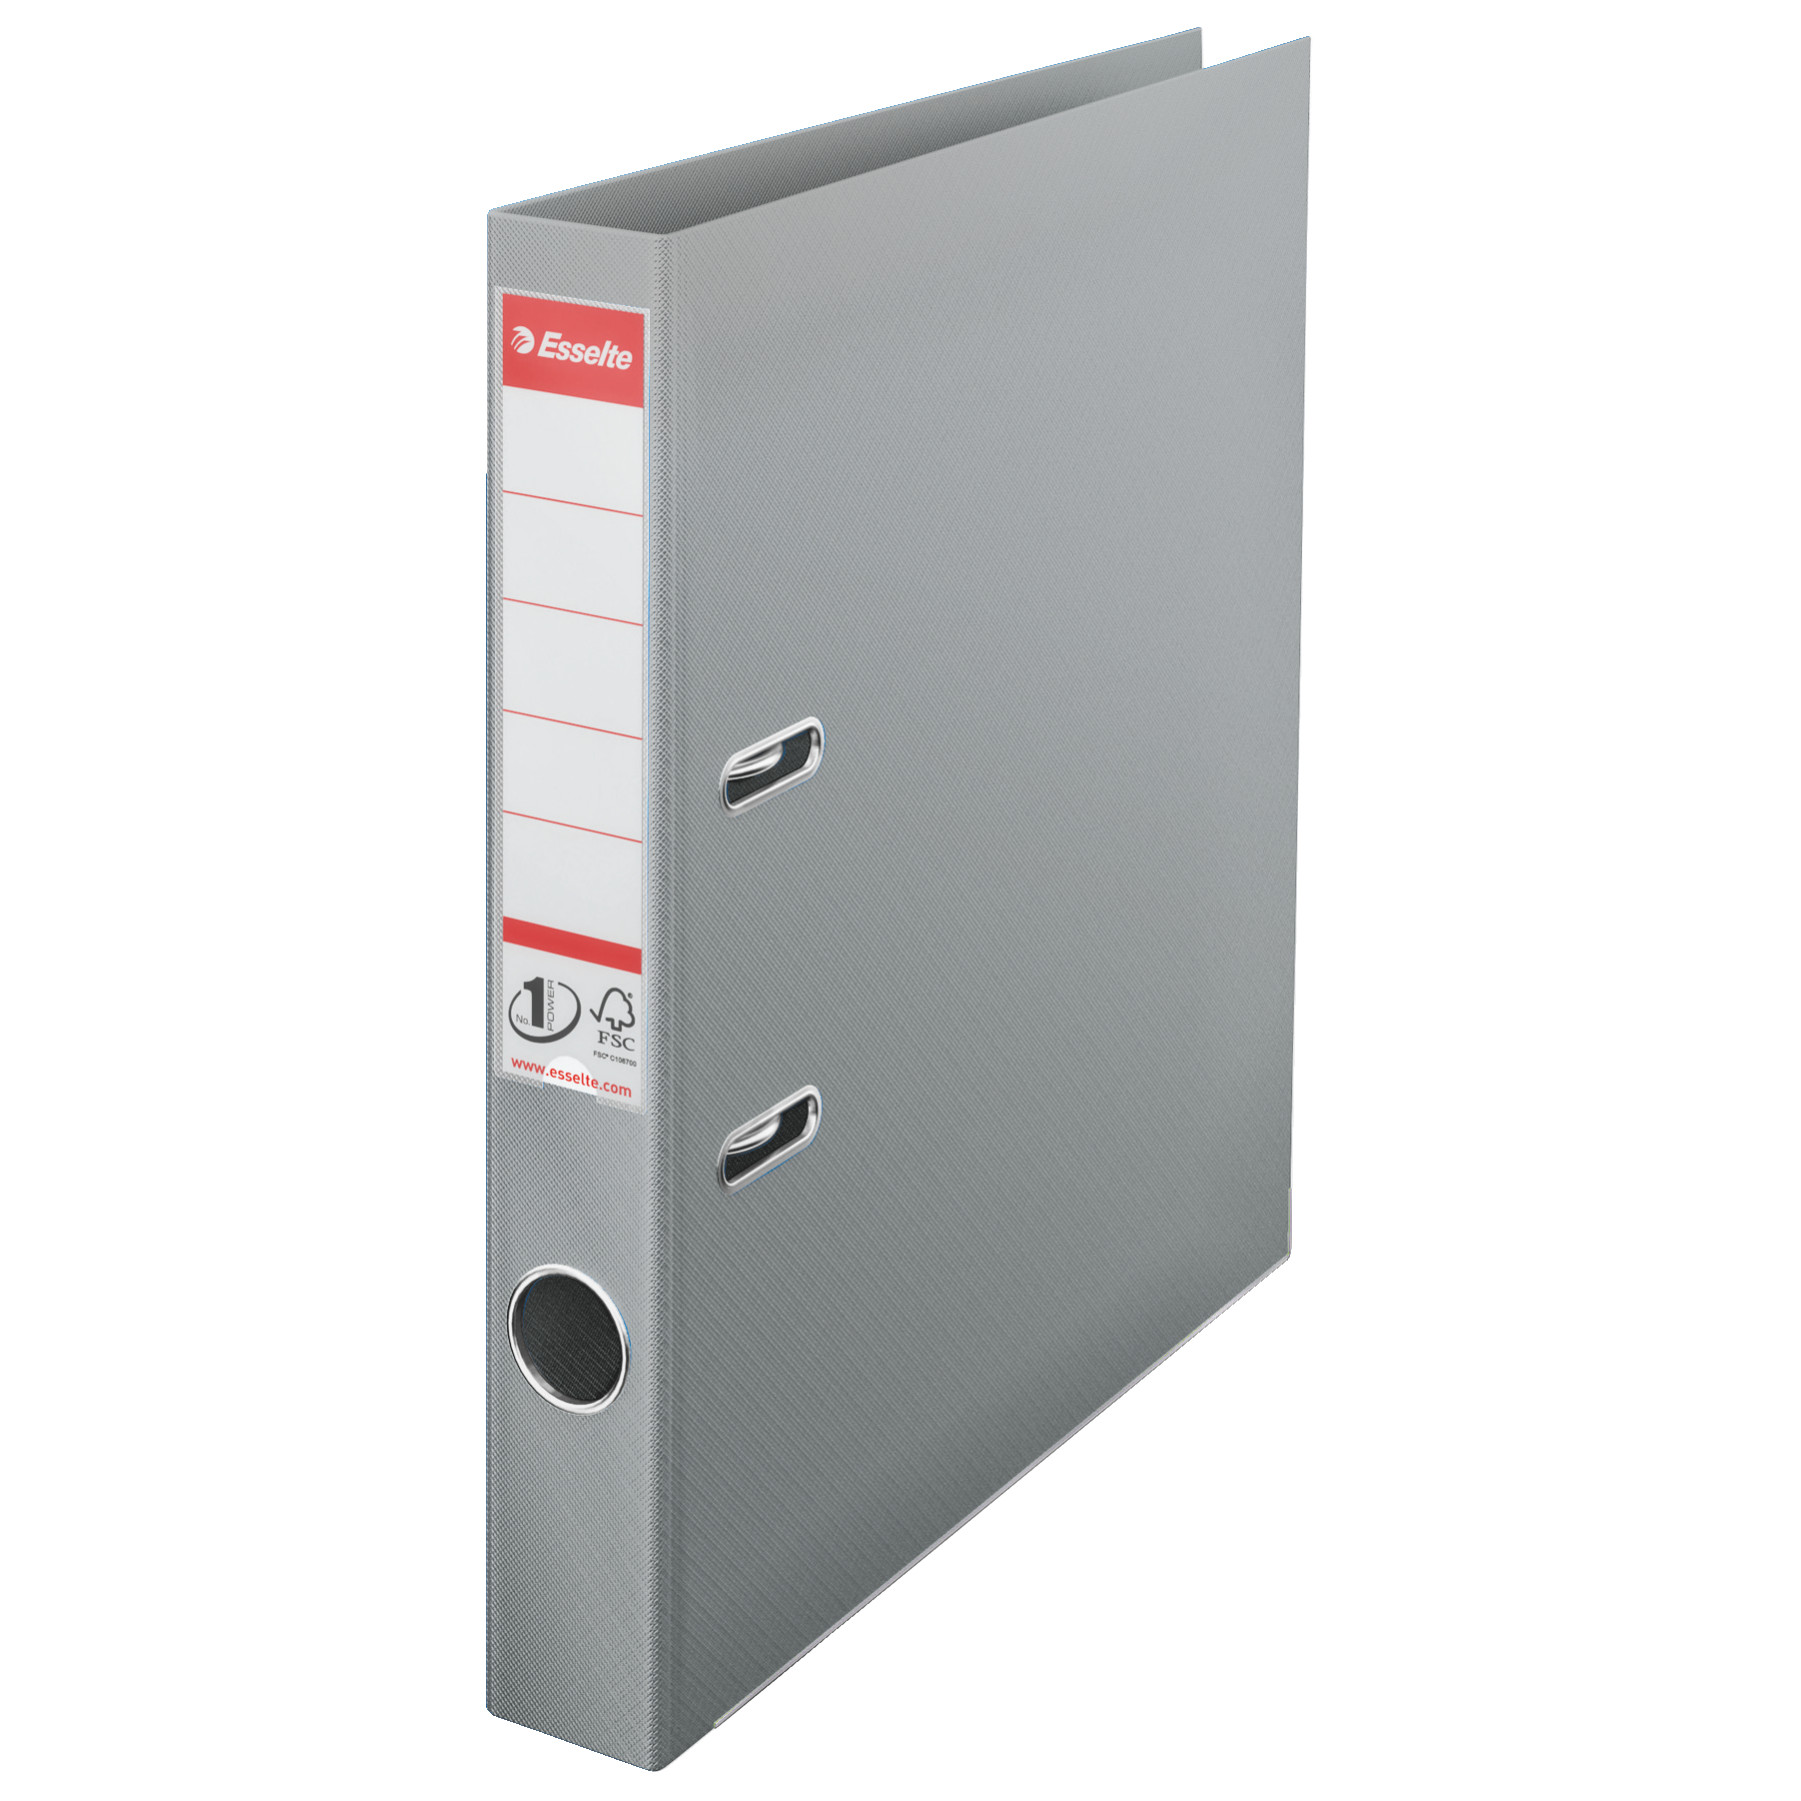 "Esselte Lever Arch File 1.5"" Spine A4 (4-32) - Grey"